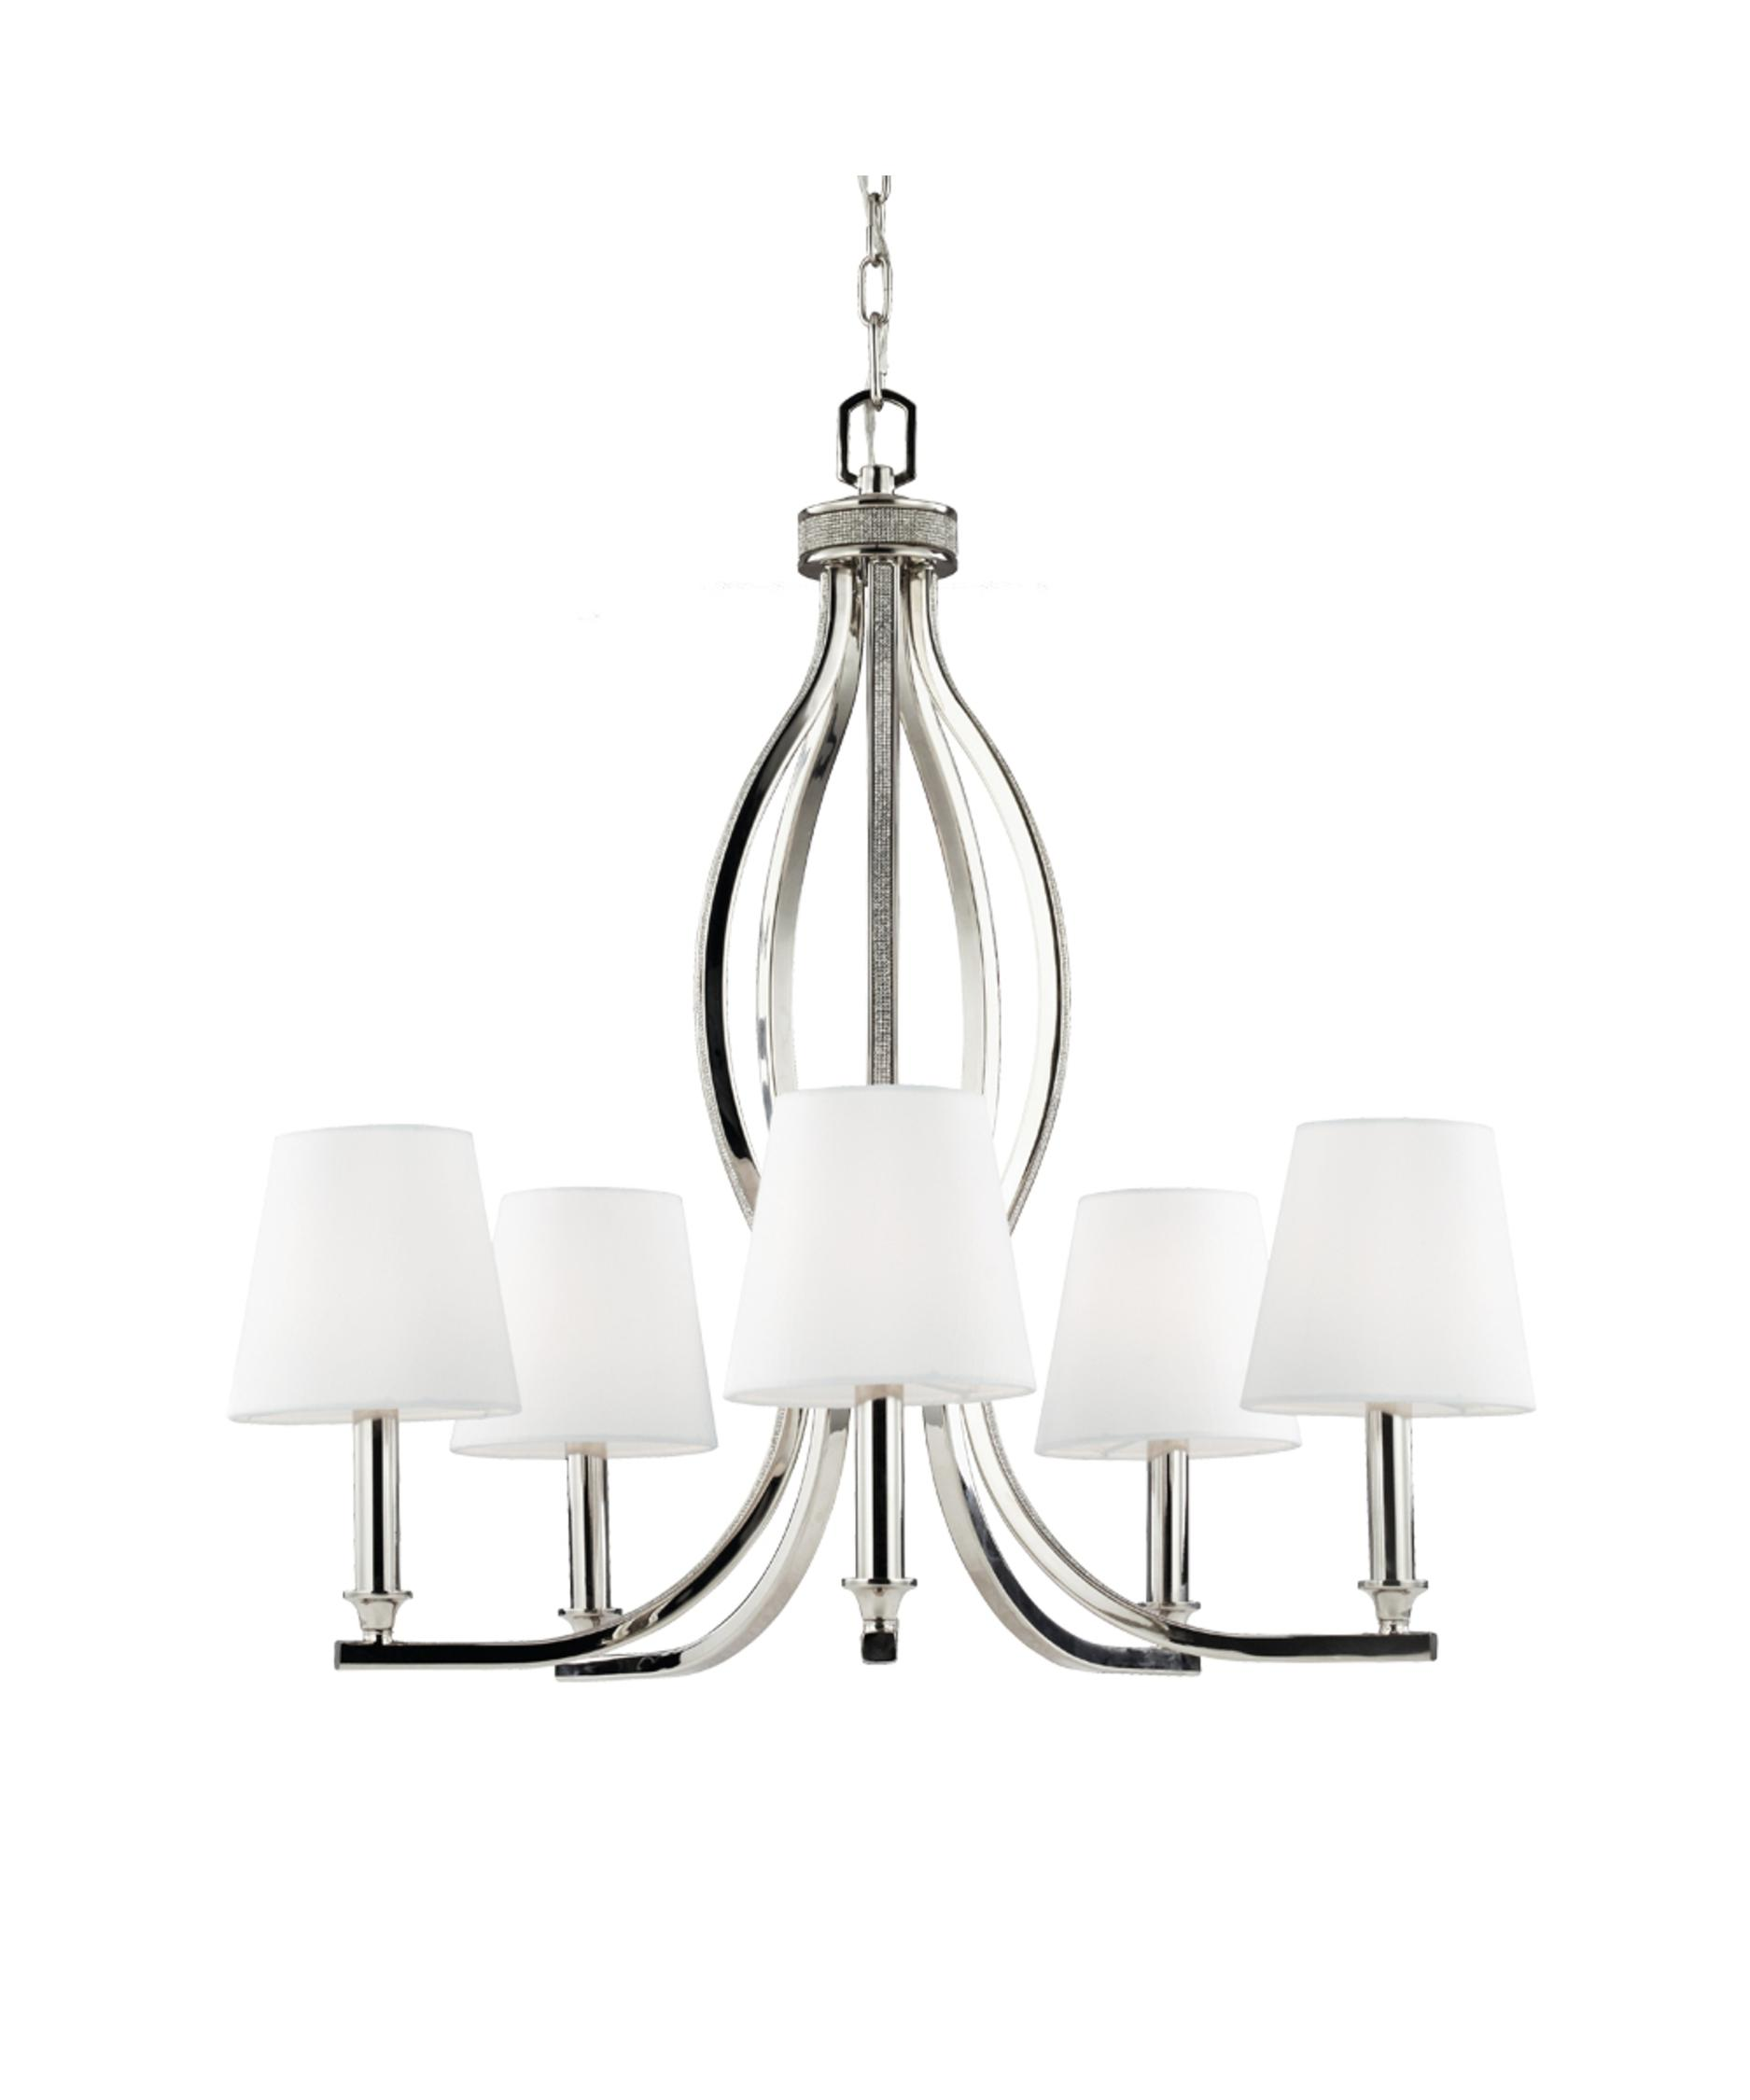 Murray Feiss Pave 25 Inch Wide 5 Light Chandelier – Murray Feiss Chandeliers